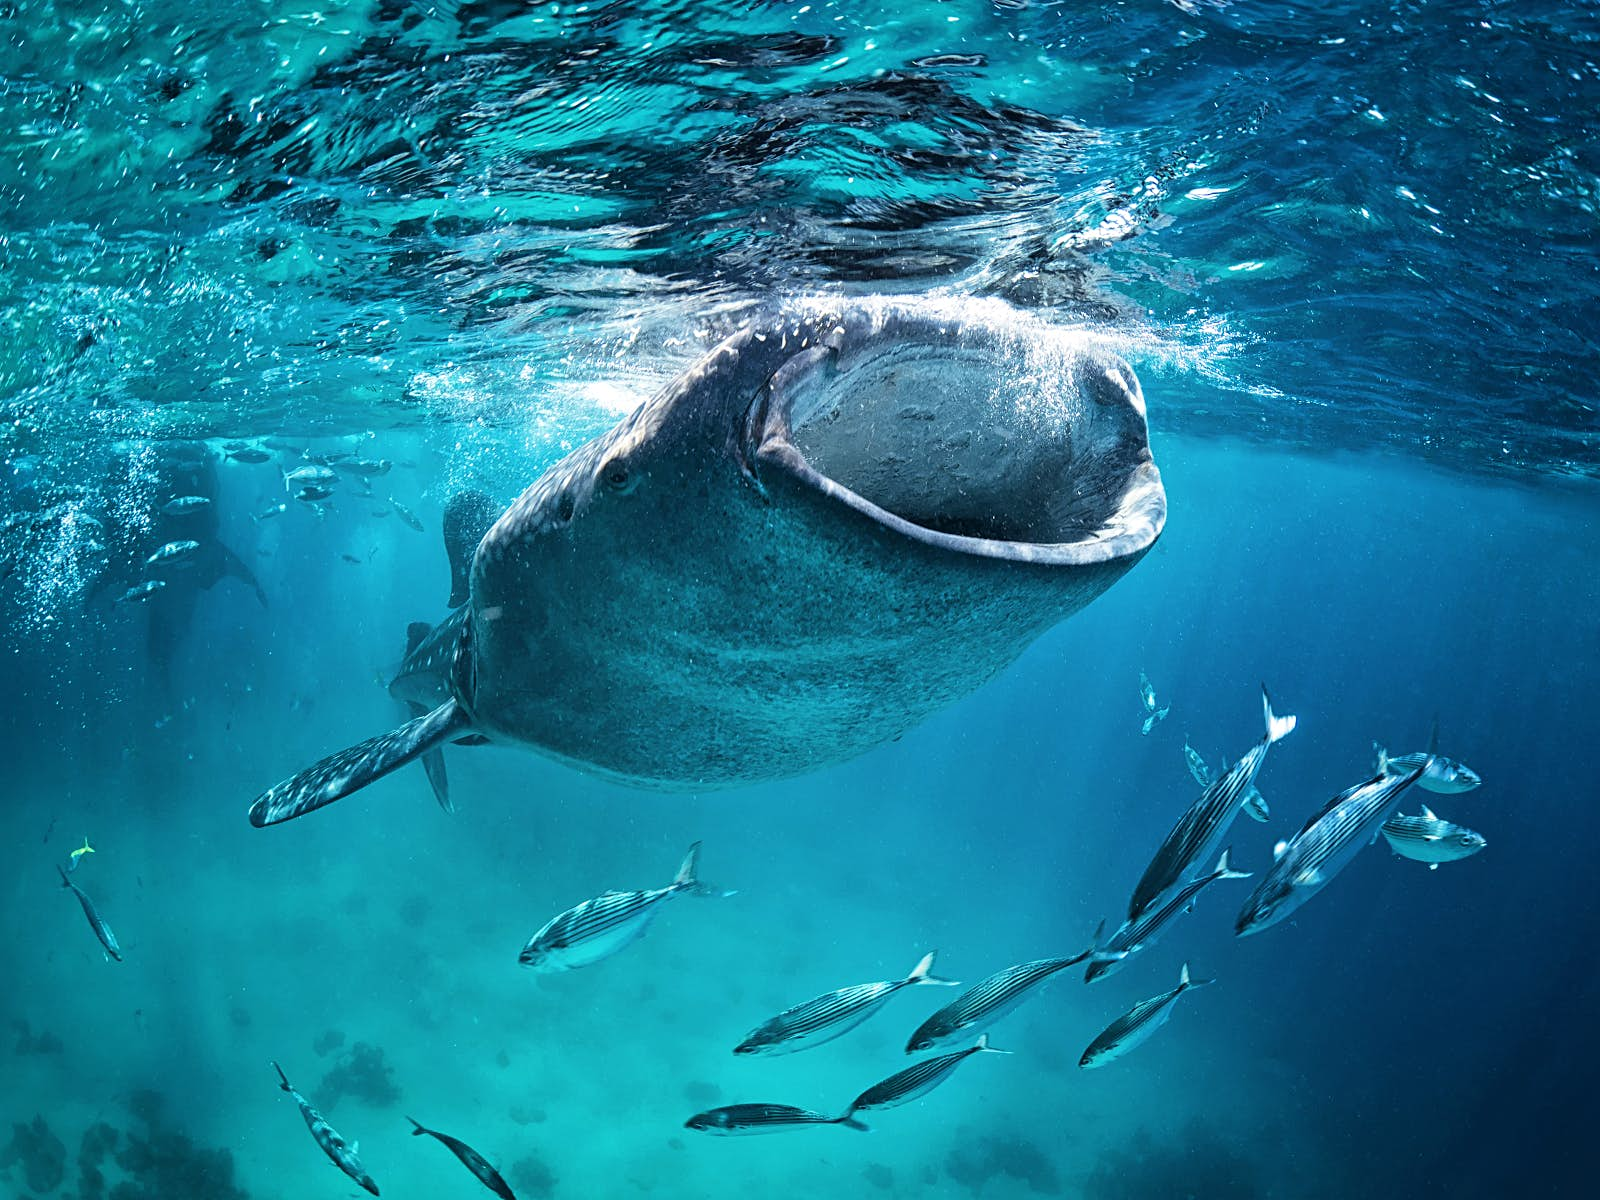 Underwater shot of a whale shark feeding near the surface of the water with its huge mouth wide open; a shoal of fish surrounds it.